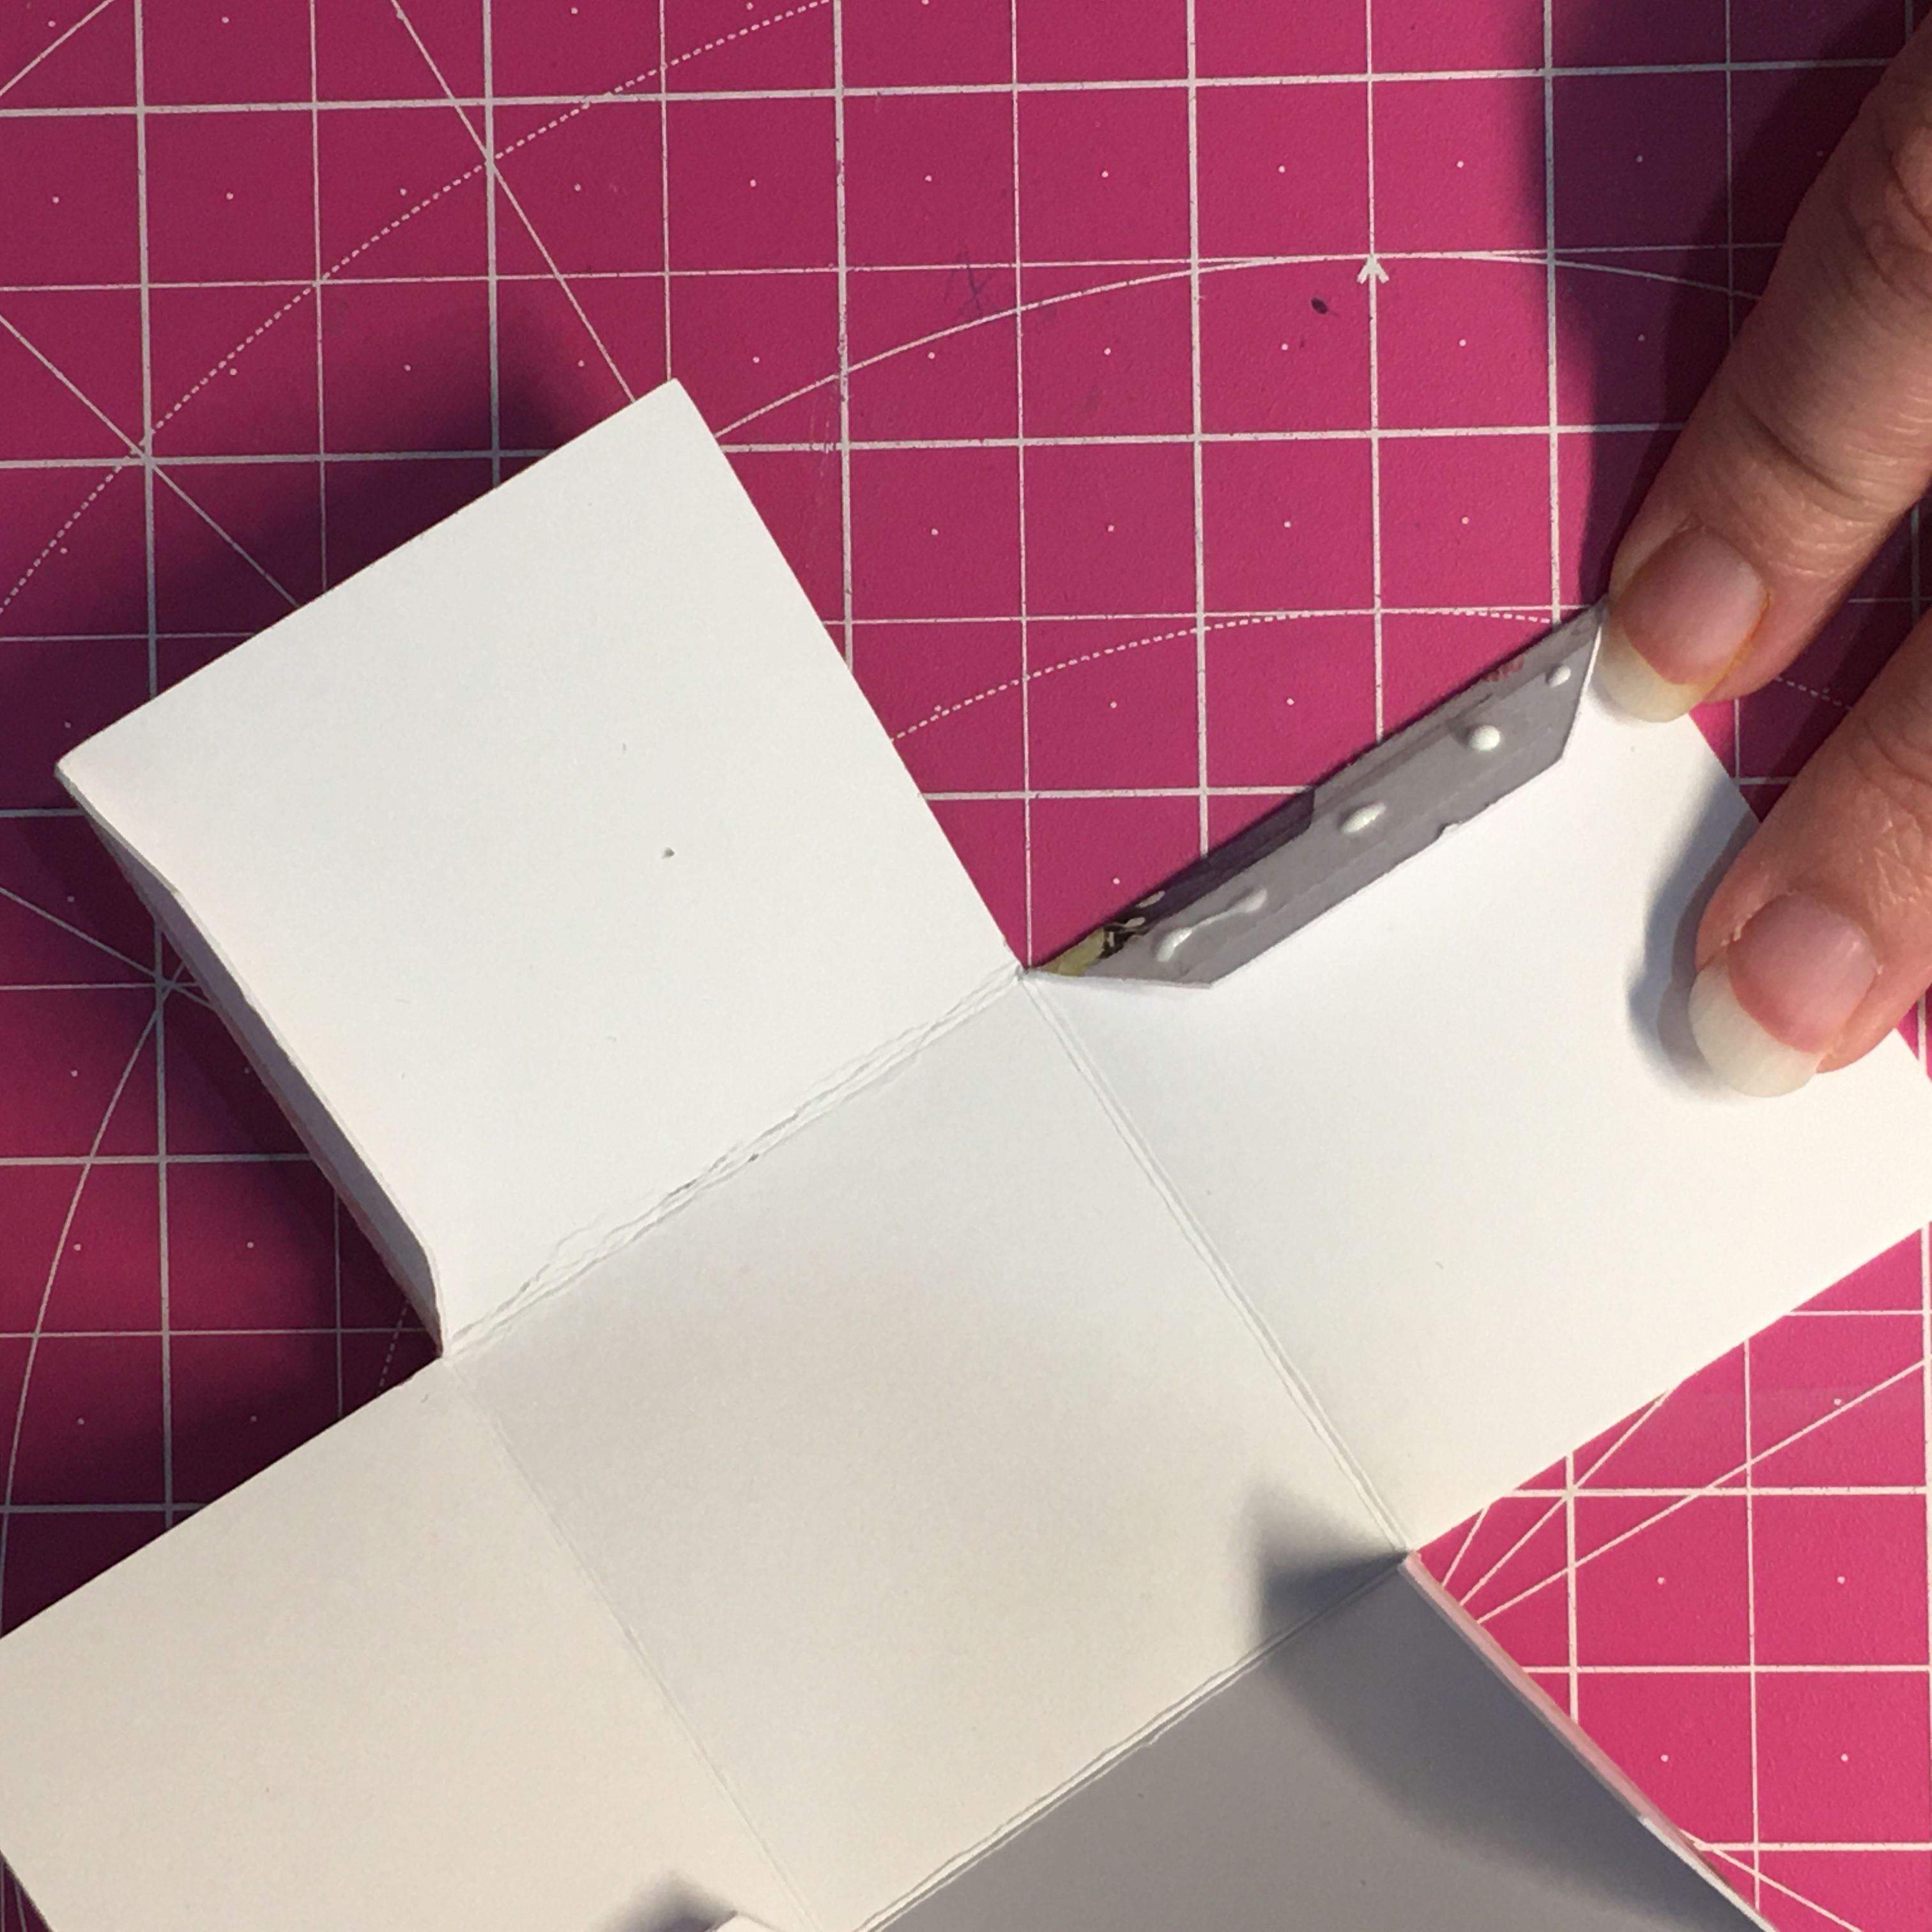 Gluing the tabs